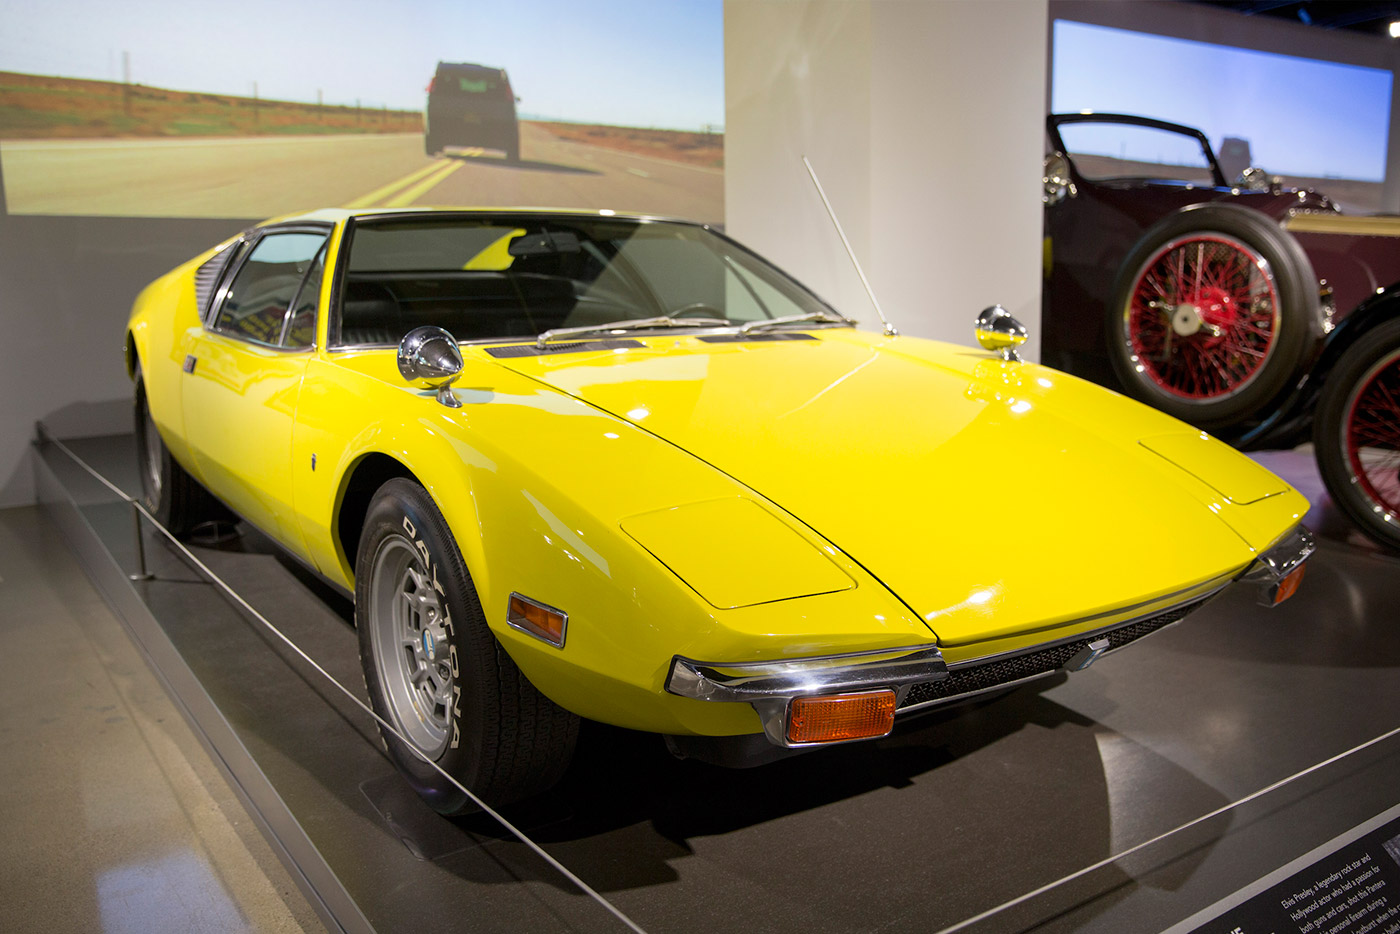 1971 De Tomaso Pantera: This Italian-American exotic belonged to Elvis Presley, who once hopped in the driver's seat hoping to peel out in a dramatic exit. Instead, the engine stalled, Elvis took out his revolver, and shot the car three times